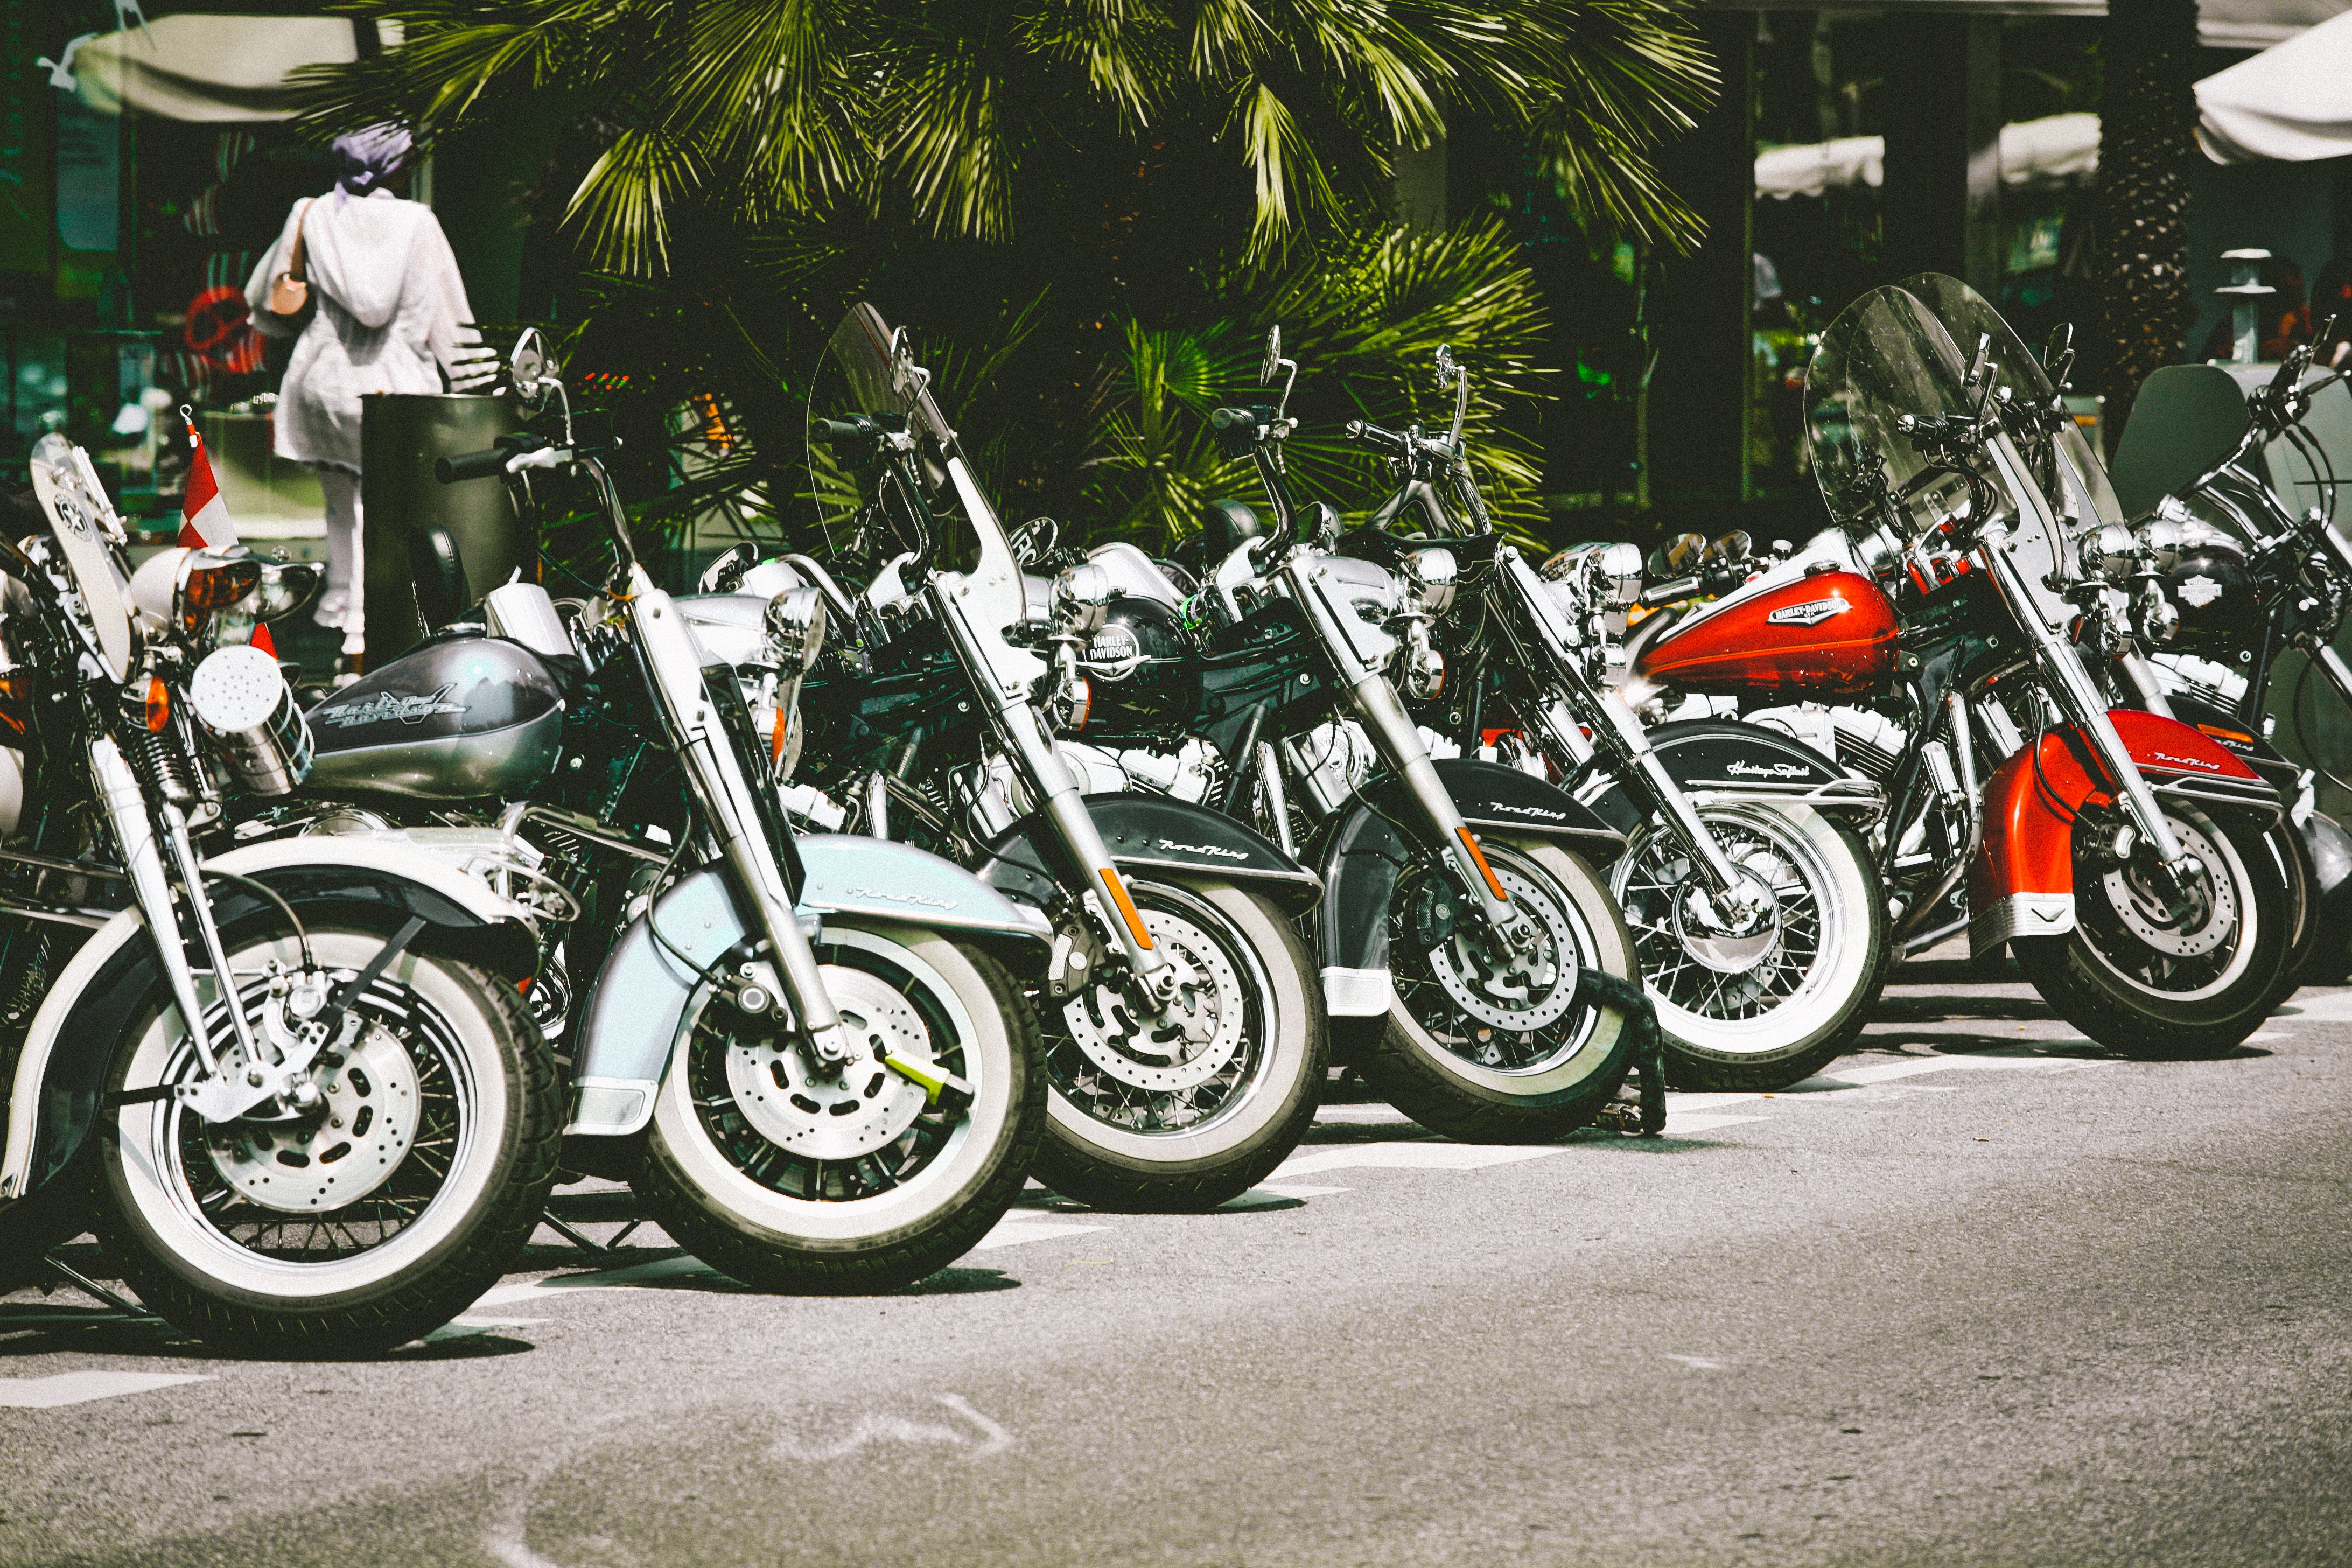 Photo of Motorcycles Parked on Street